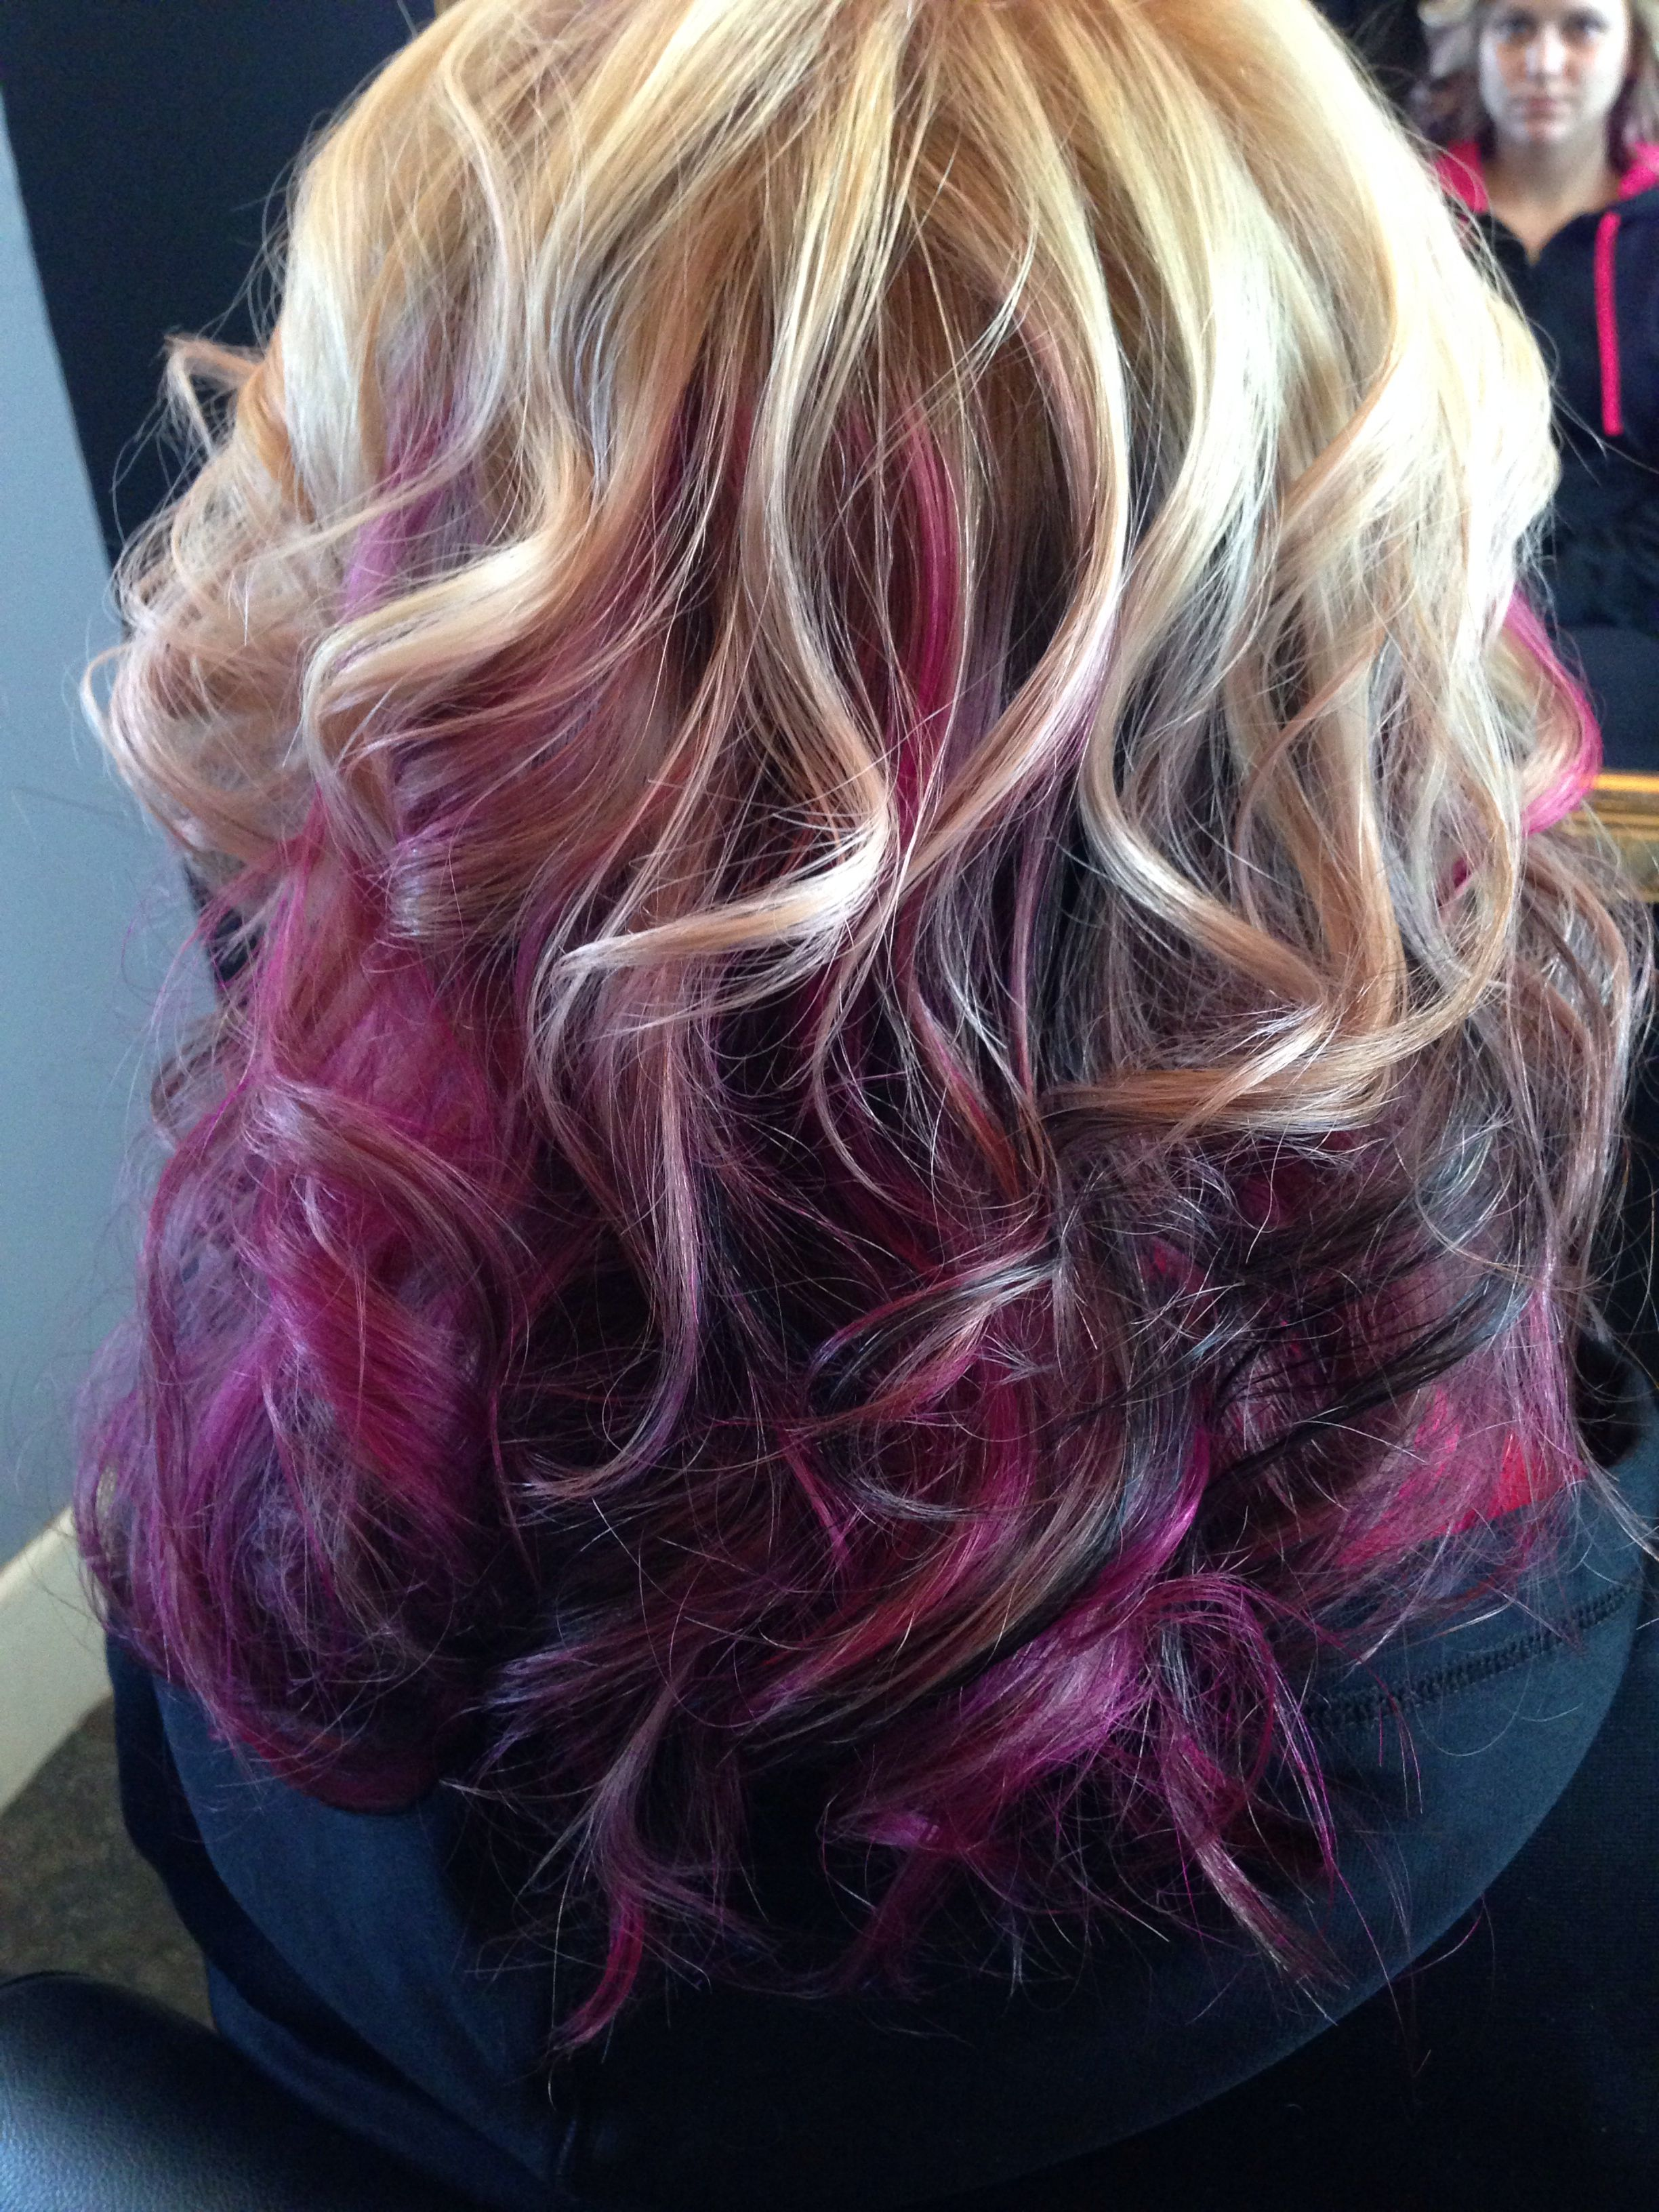 Photos black purple and blonde hair of desktop hd pics with pink highlights love voila